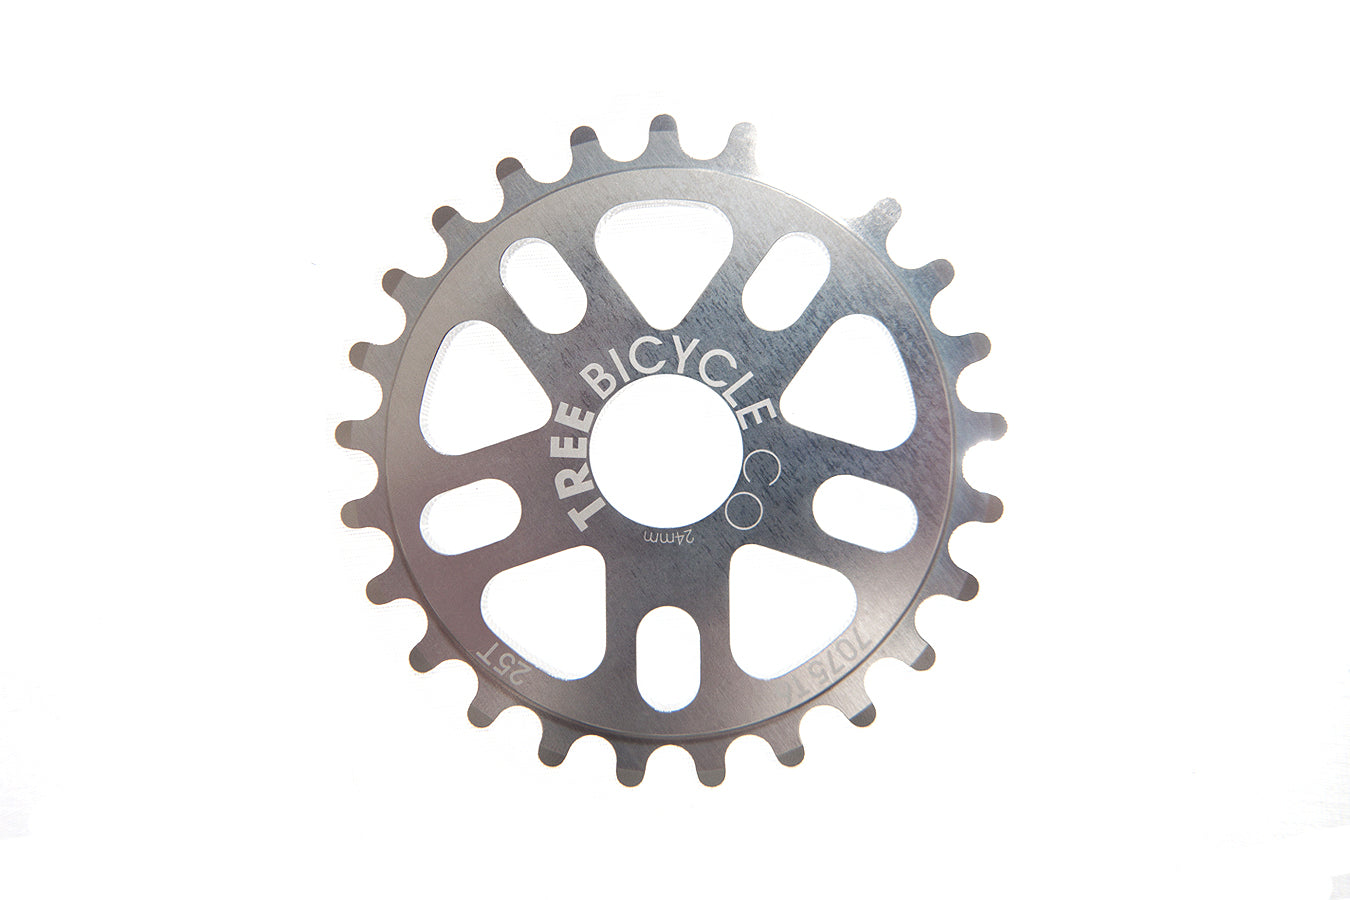 Original Bolt Drive Sprocket